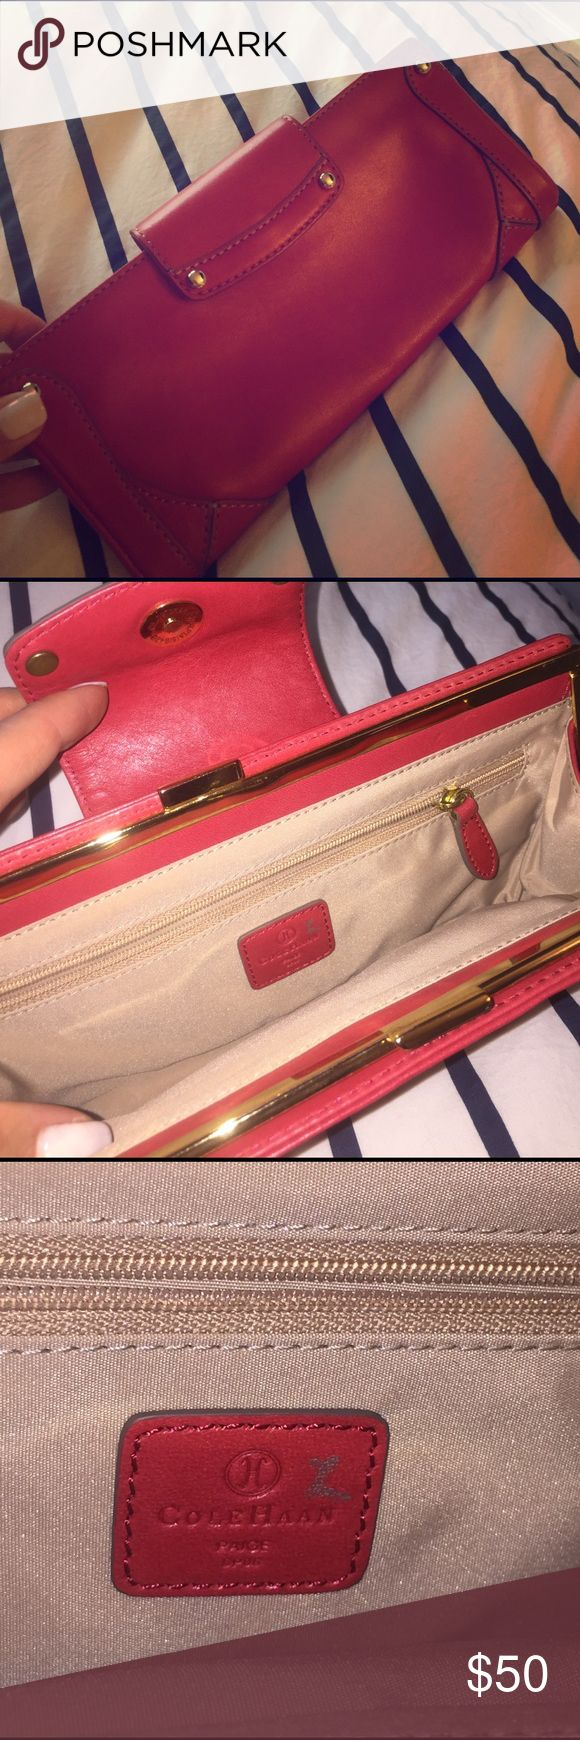 """Cole haan red leather clutch! From a sample sale (notice silver mark on tag and missing studs on back in pictures). Perfect for a night out. Soft leather. Gold hardware. Includes inter zipper pocket. About 12"""" long. Cole Haan Bags Clutches & Wristlets"""